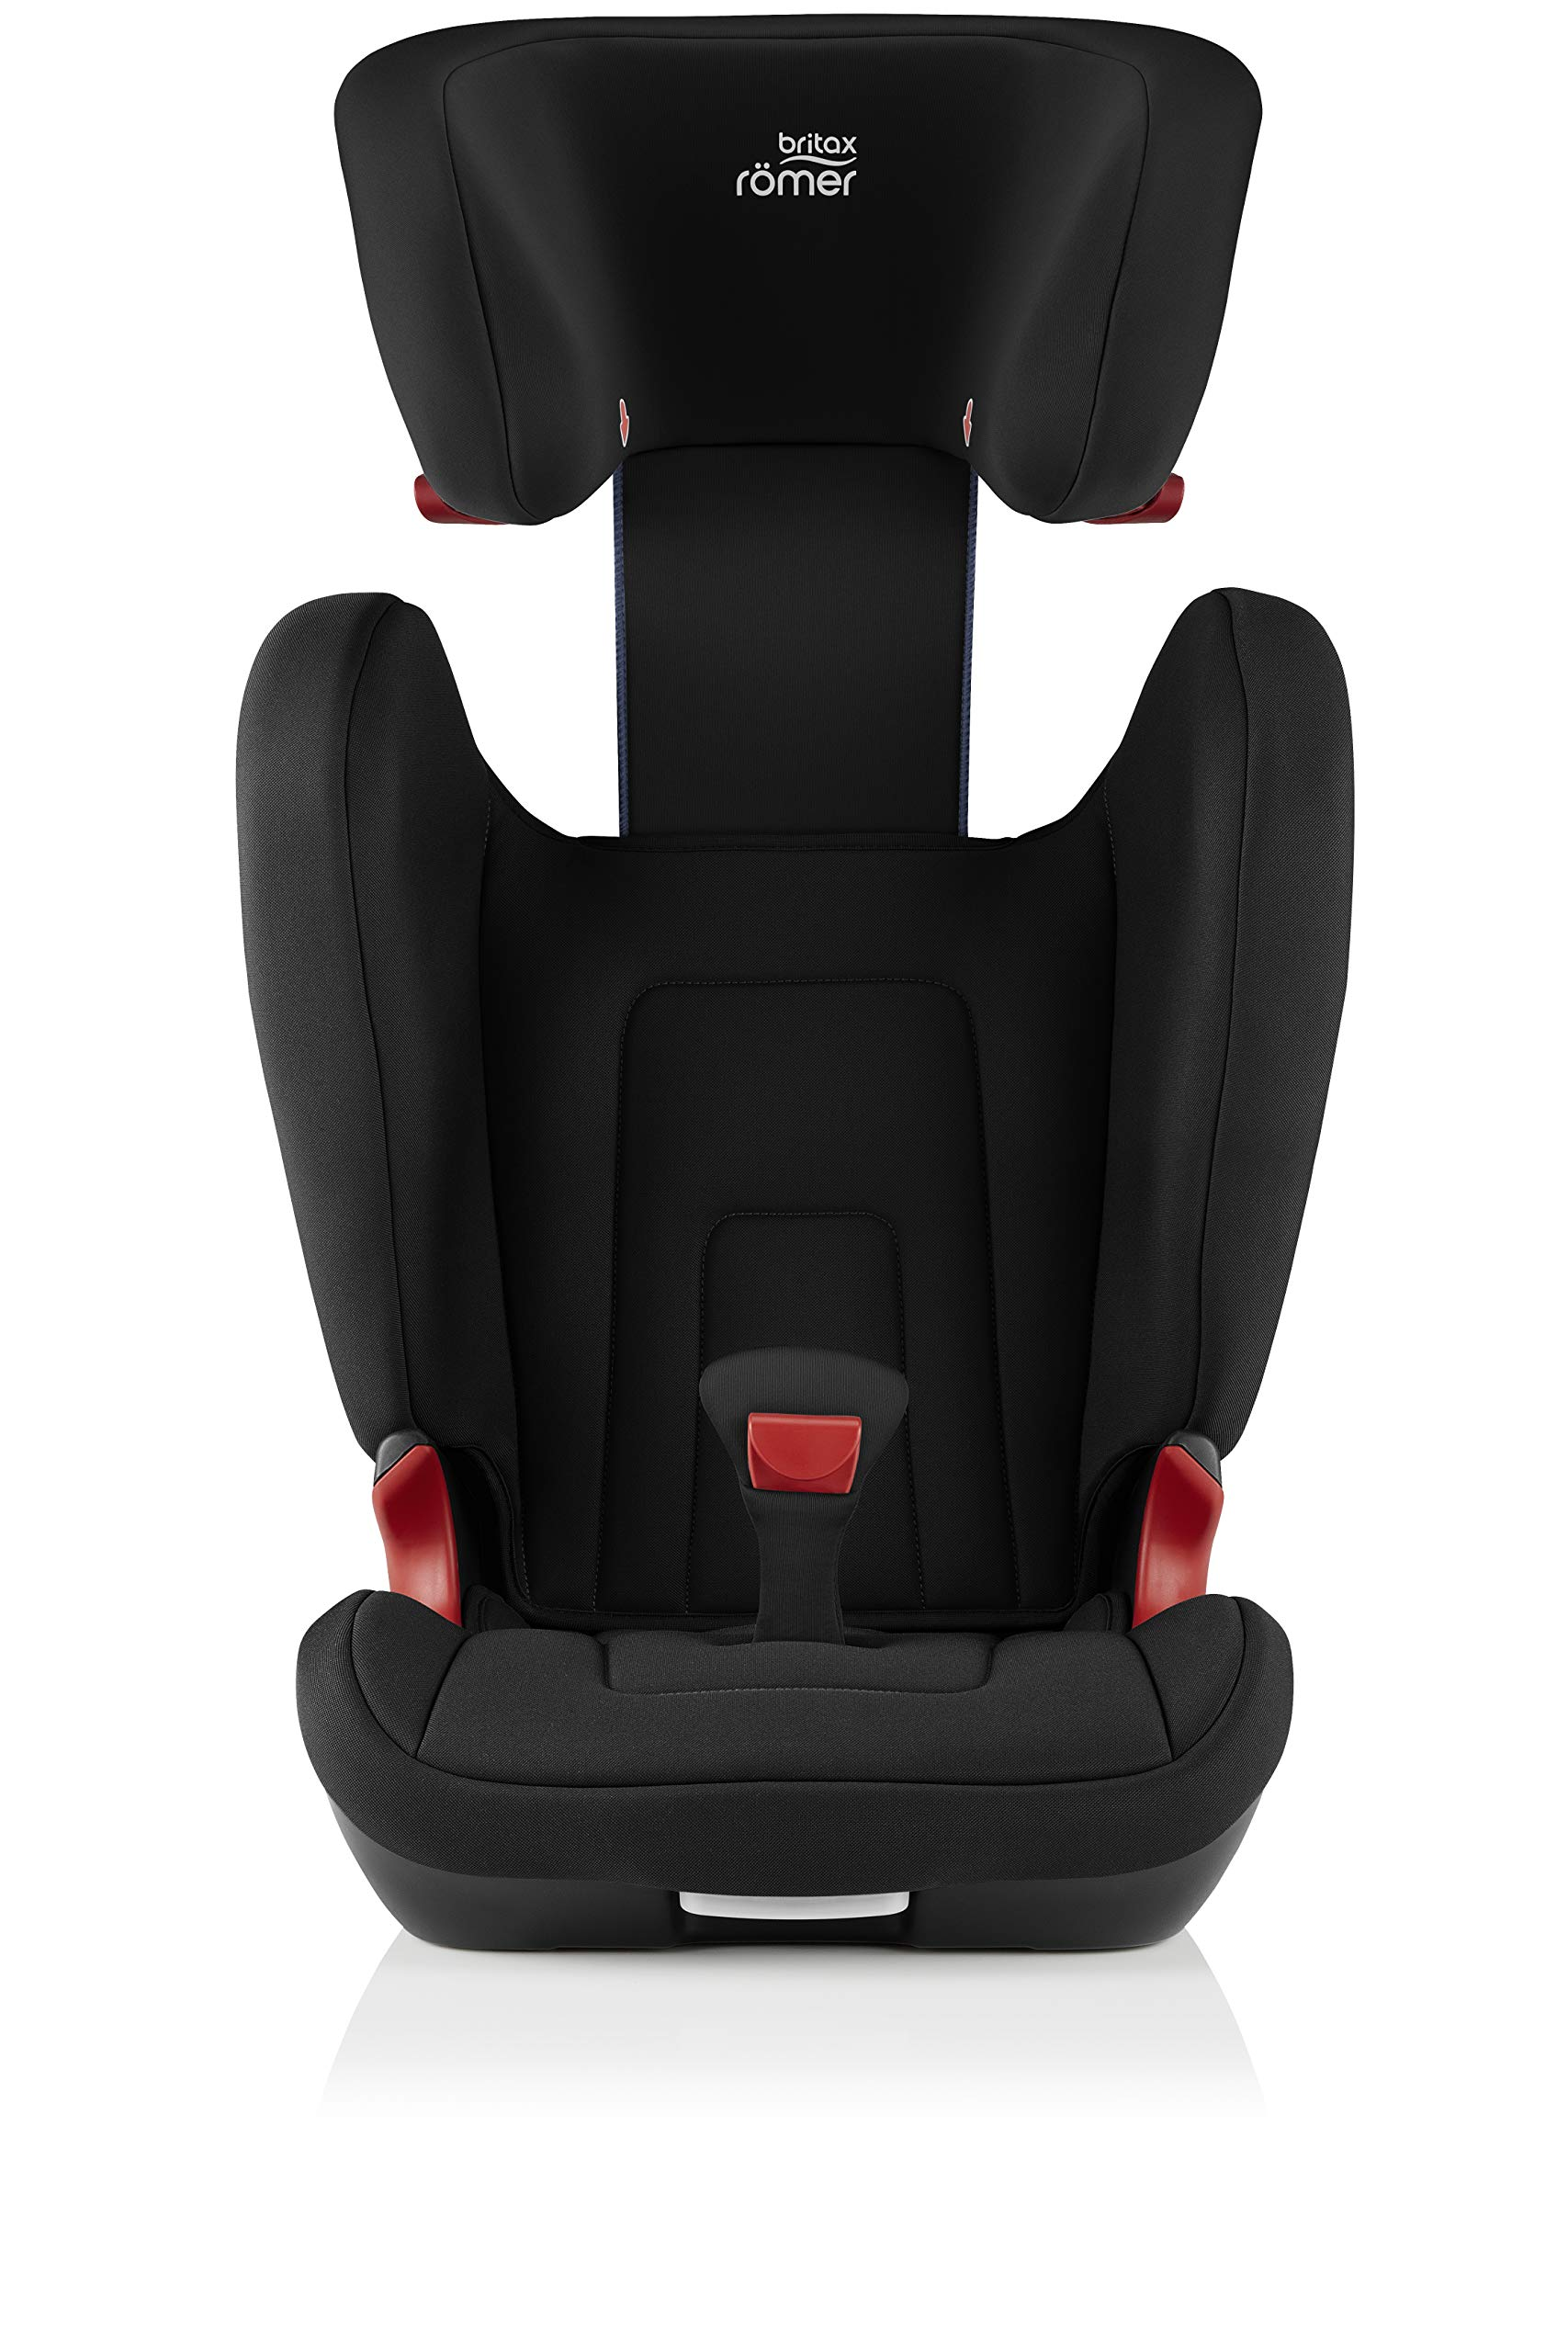 Britax Römer car seat 15-36 kg, KIDFIX 2 R Isofix group 2/3, Cosmos Black Britax Römer Secure guard - helps to protect your child's delicate abdominal area by adding an extra - a 4th - contact point to the 3-point seat belt. High back booster - protects your child in 3 ways: provides head to hip protection; belt guides provide correct positioning of the seat belt and the padded headrest provides safety and comfort. Easy adjustable v-shaped backrest - designed to give optimum support to your growing child, the v-shaped backrest provides more space for their back and shoulders. 6